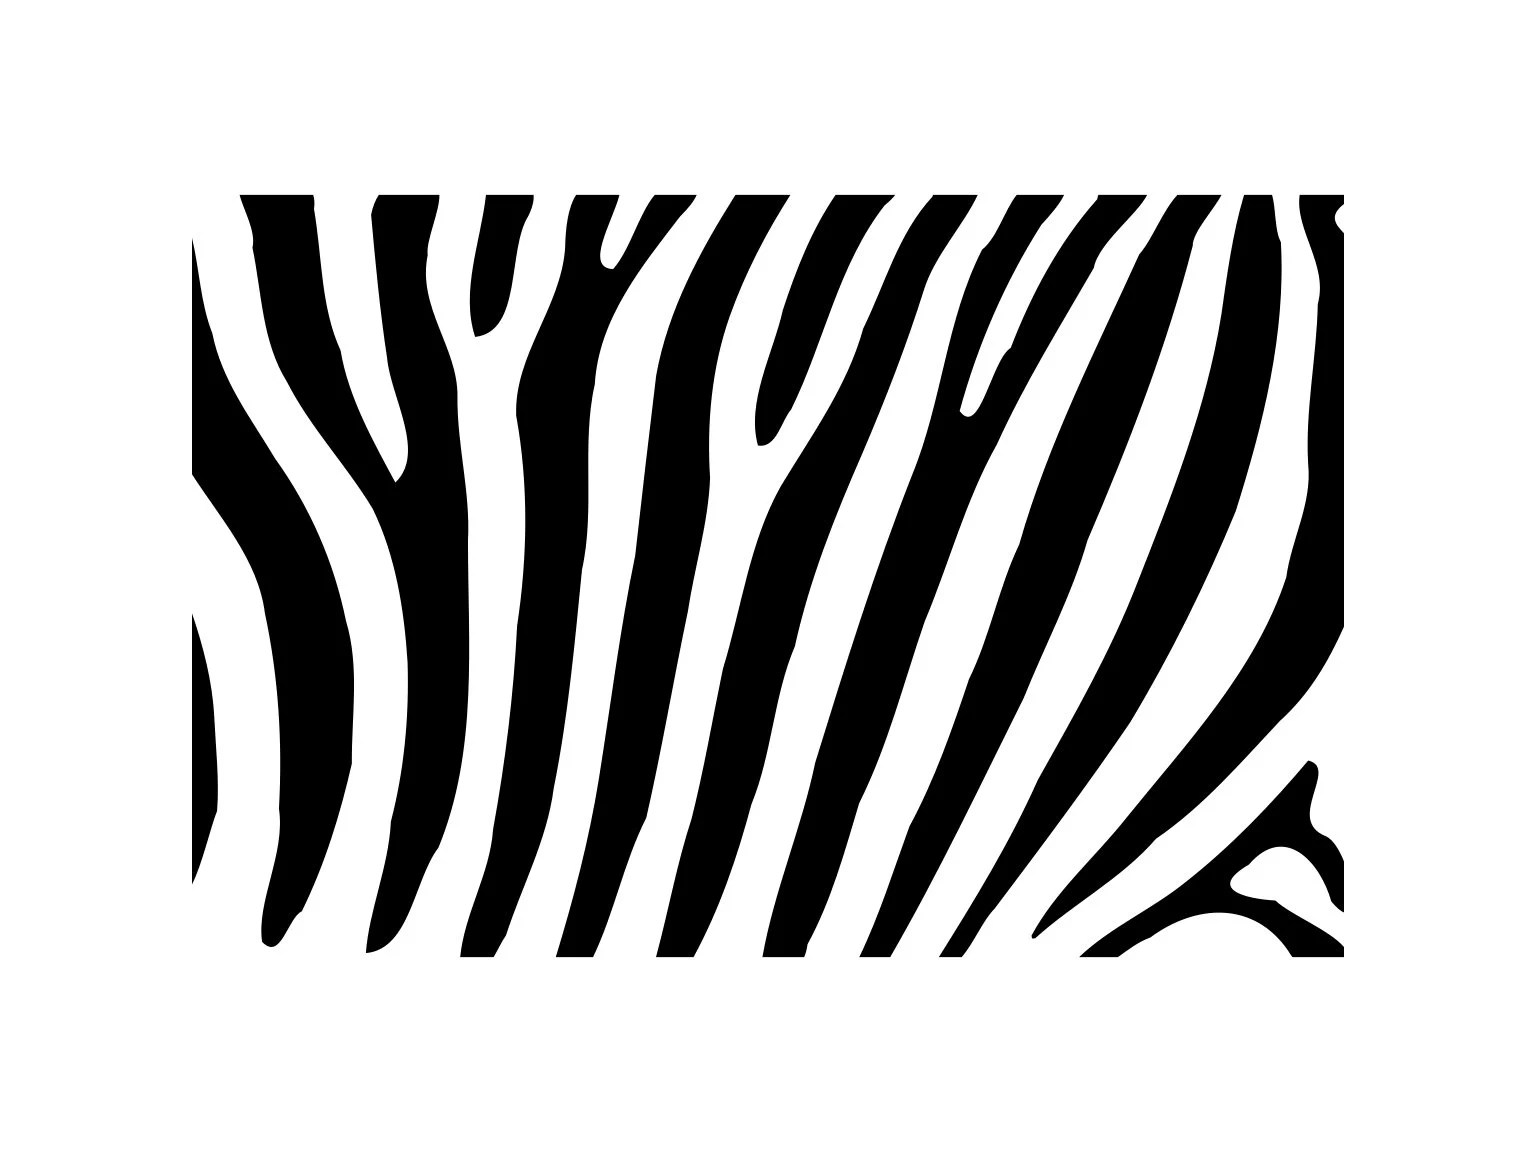 Zebra Pattern Svg Zebra Svg Cut File Cutting File Background Clipart Clip  Art Vector Dxf Png Tee shirt Design Vinyl Cut Laser Engraving Cnc